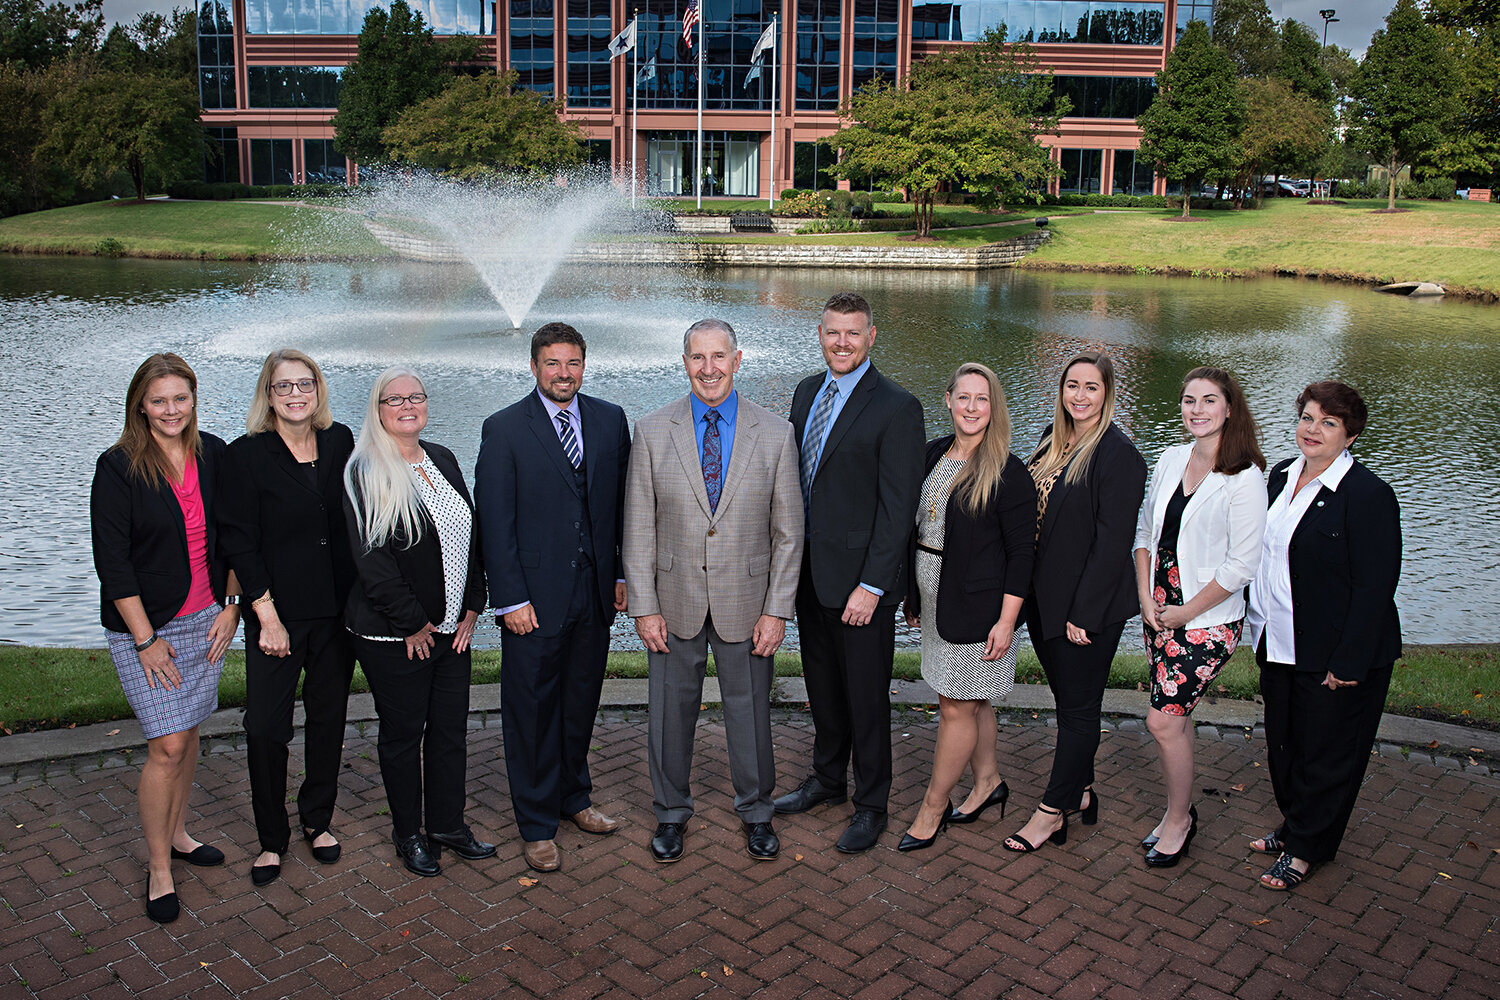 Business Group Photography